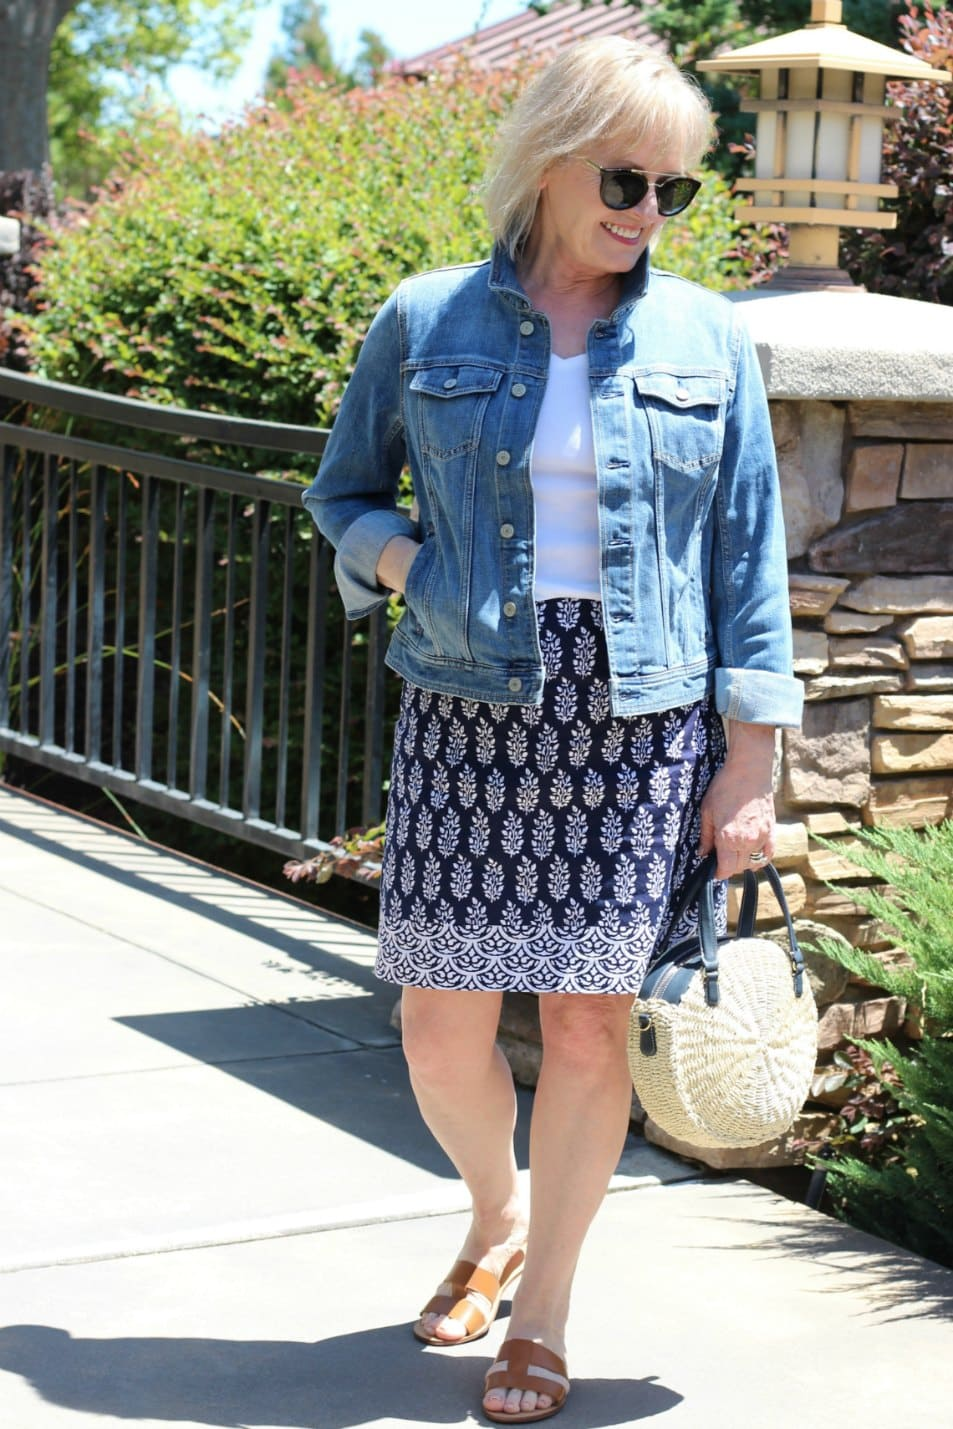 Jennifer Connolly wearign Talbots cotton skirt and denim jacket